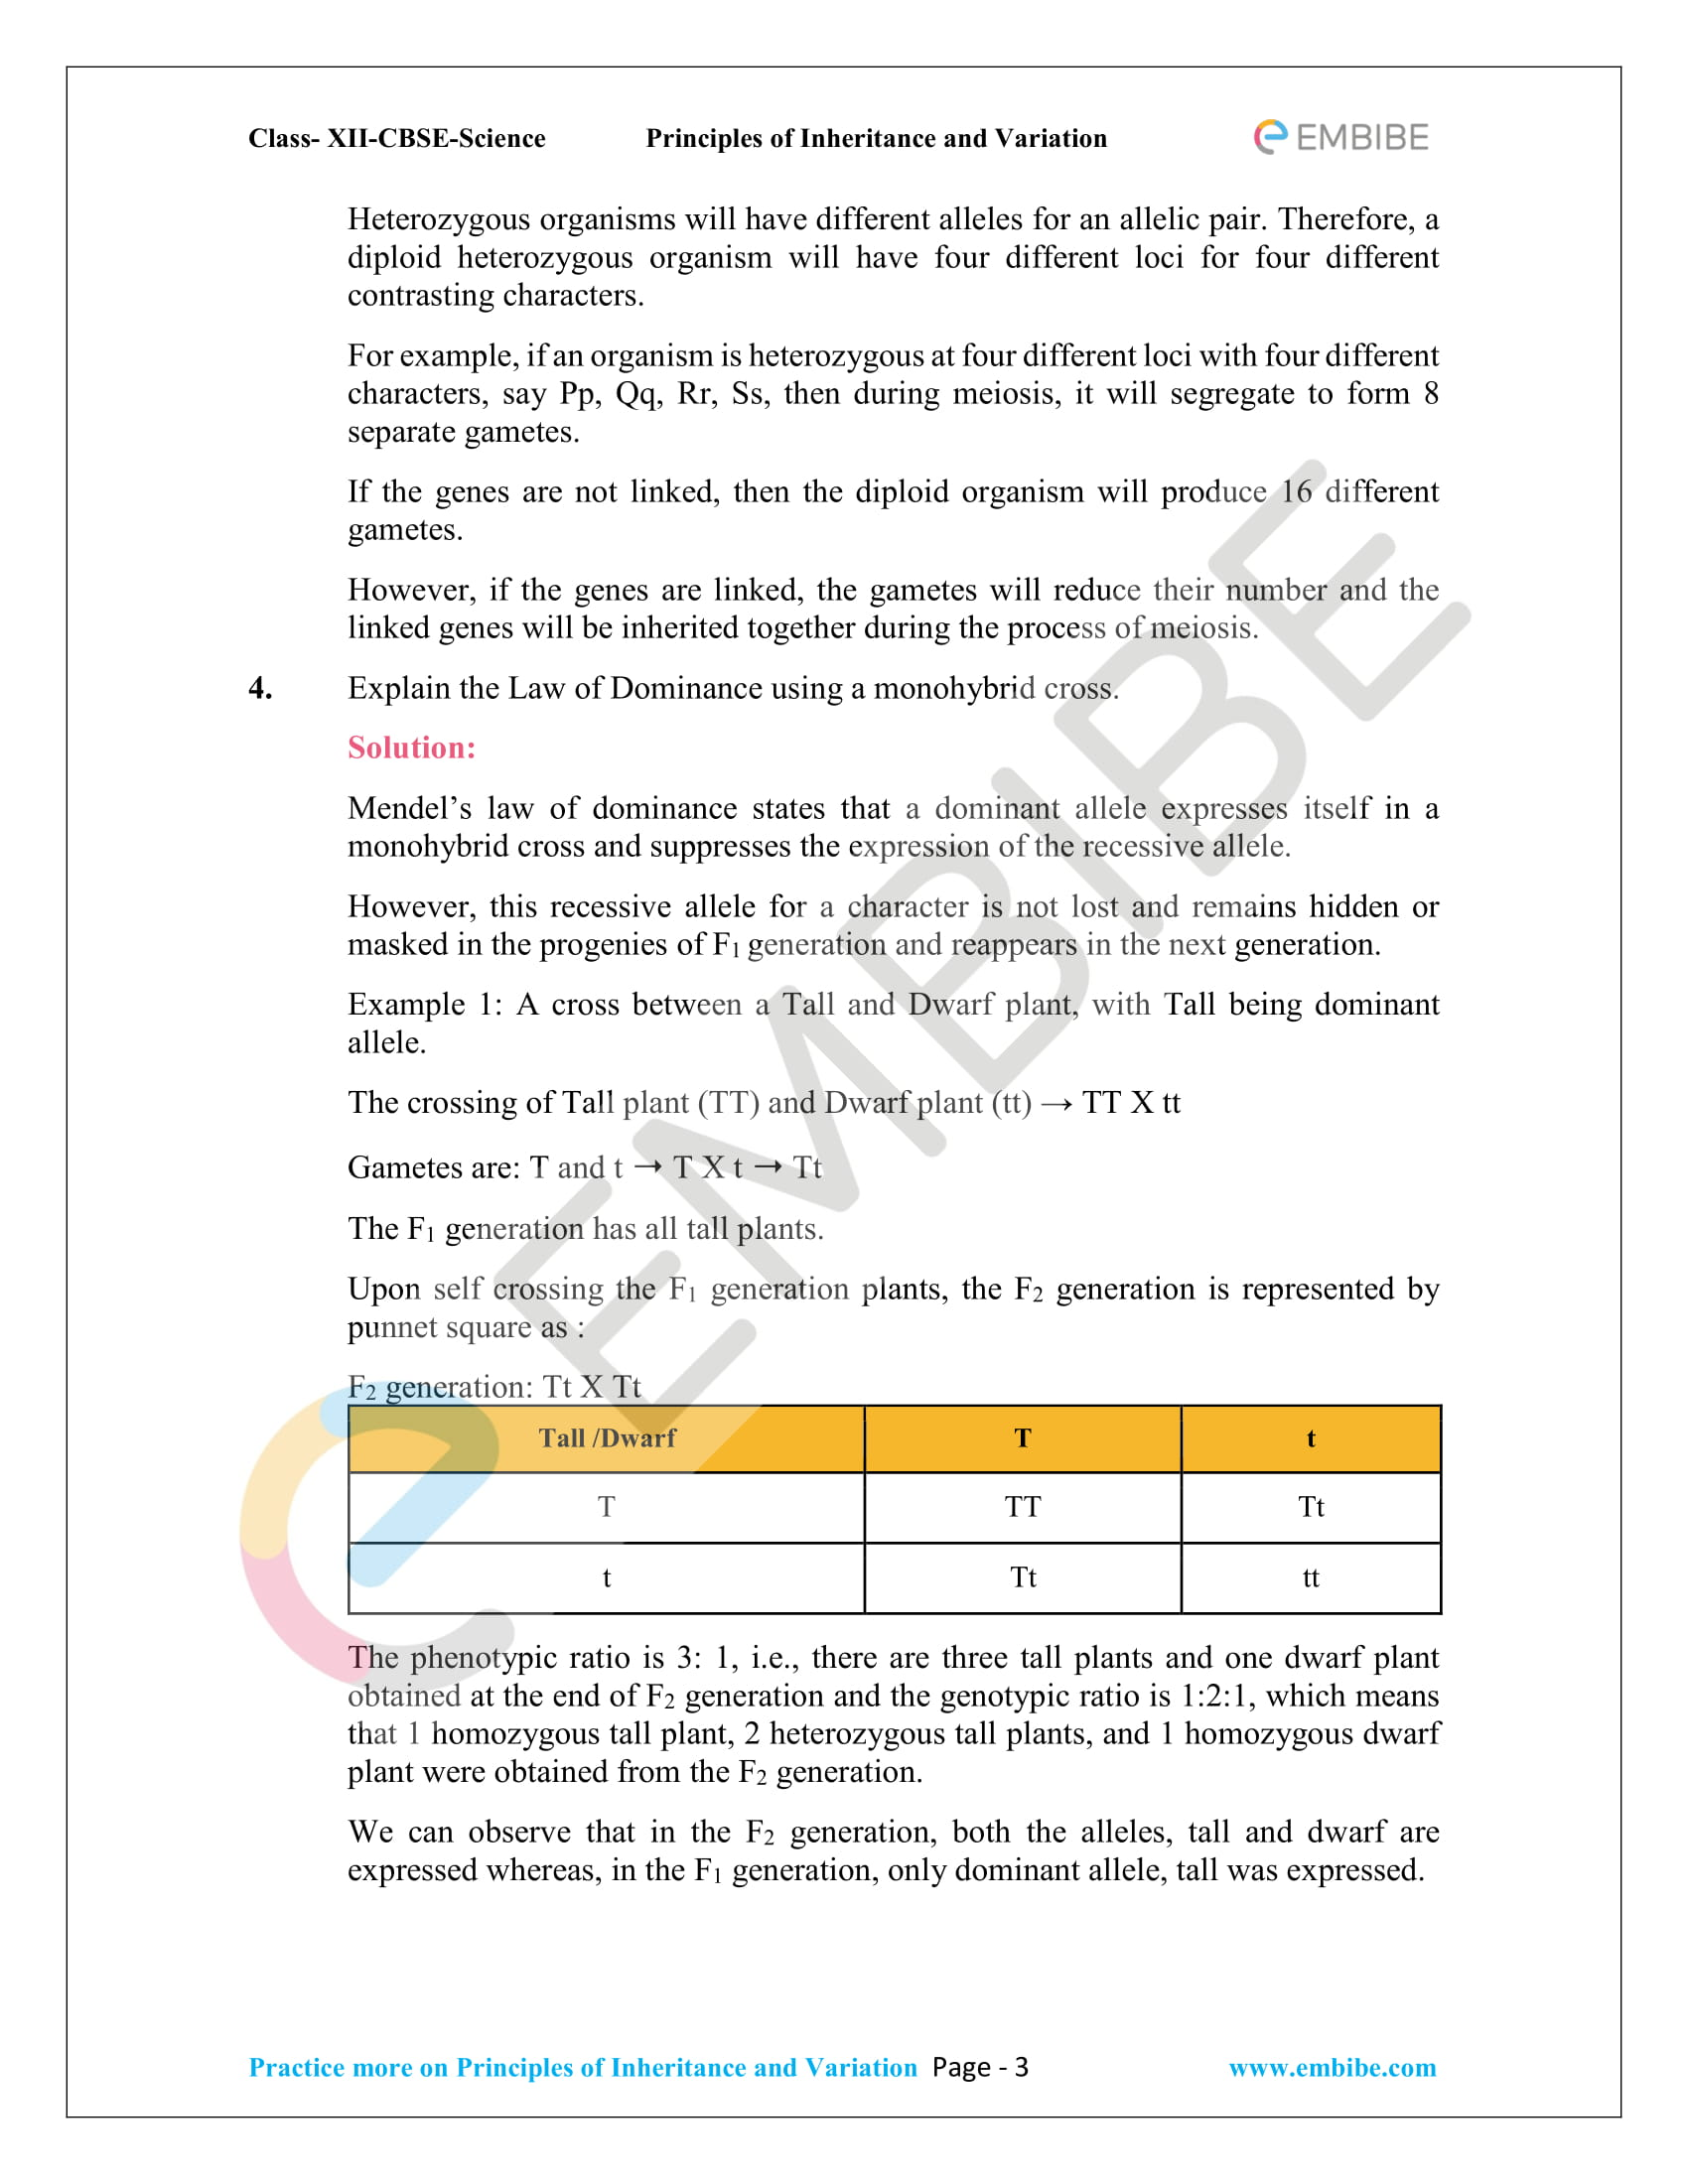 NCERT Solutions for Class 12 Biology Chapter 5: Principles Of Inheritance And Variation -3